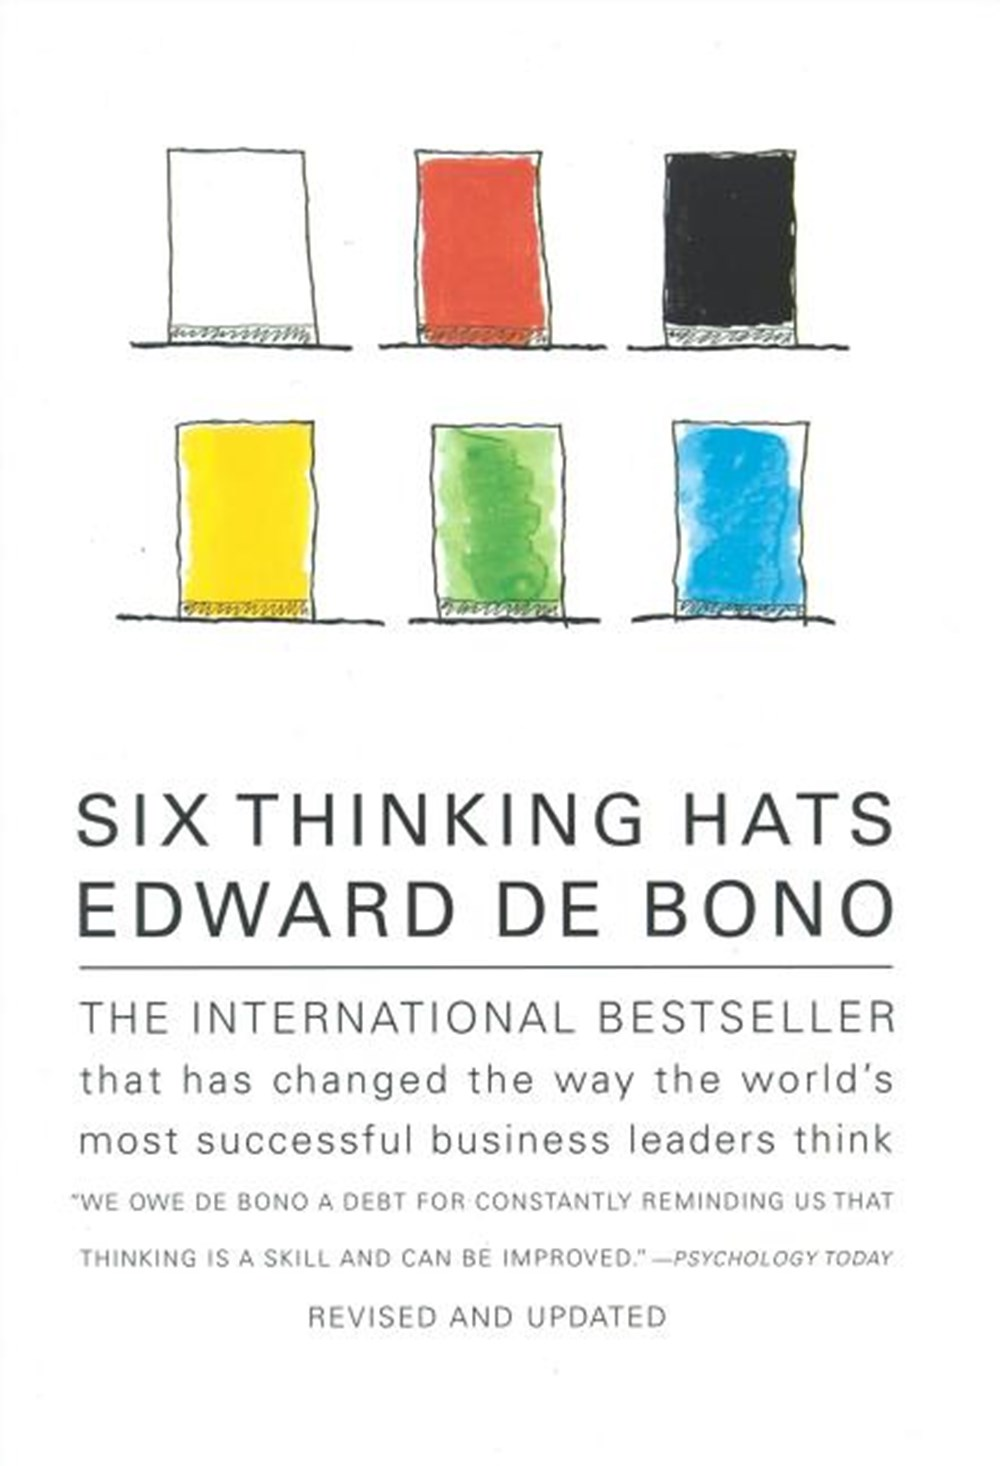 Six Thinking Hats An Essential Approach to Business Management (Revised and Updated)